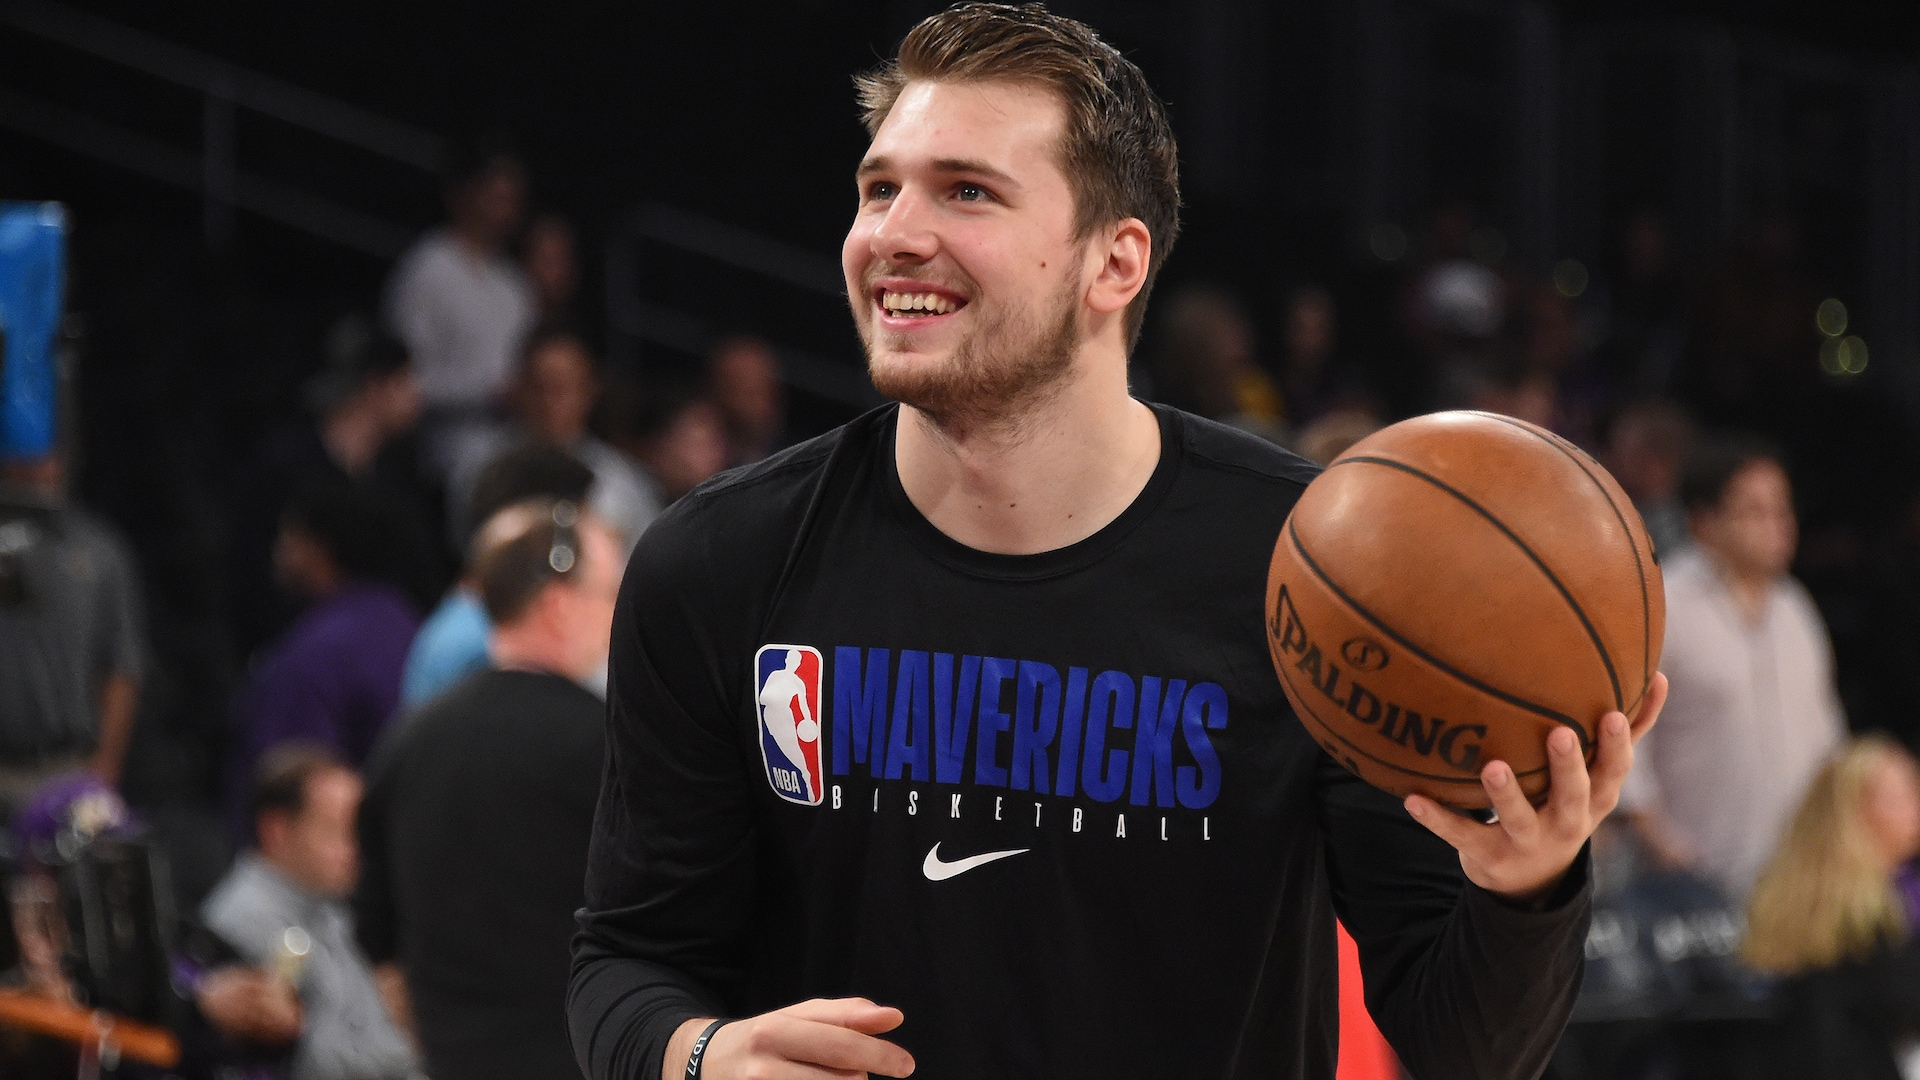 Luka Doncic says he's 'ready to play' after missing 7 games with ankle sprain